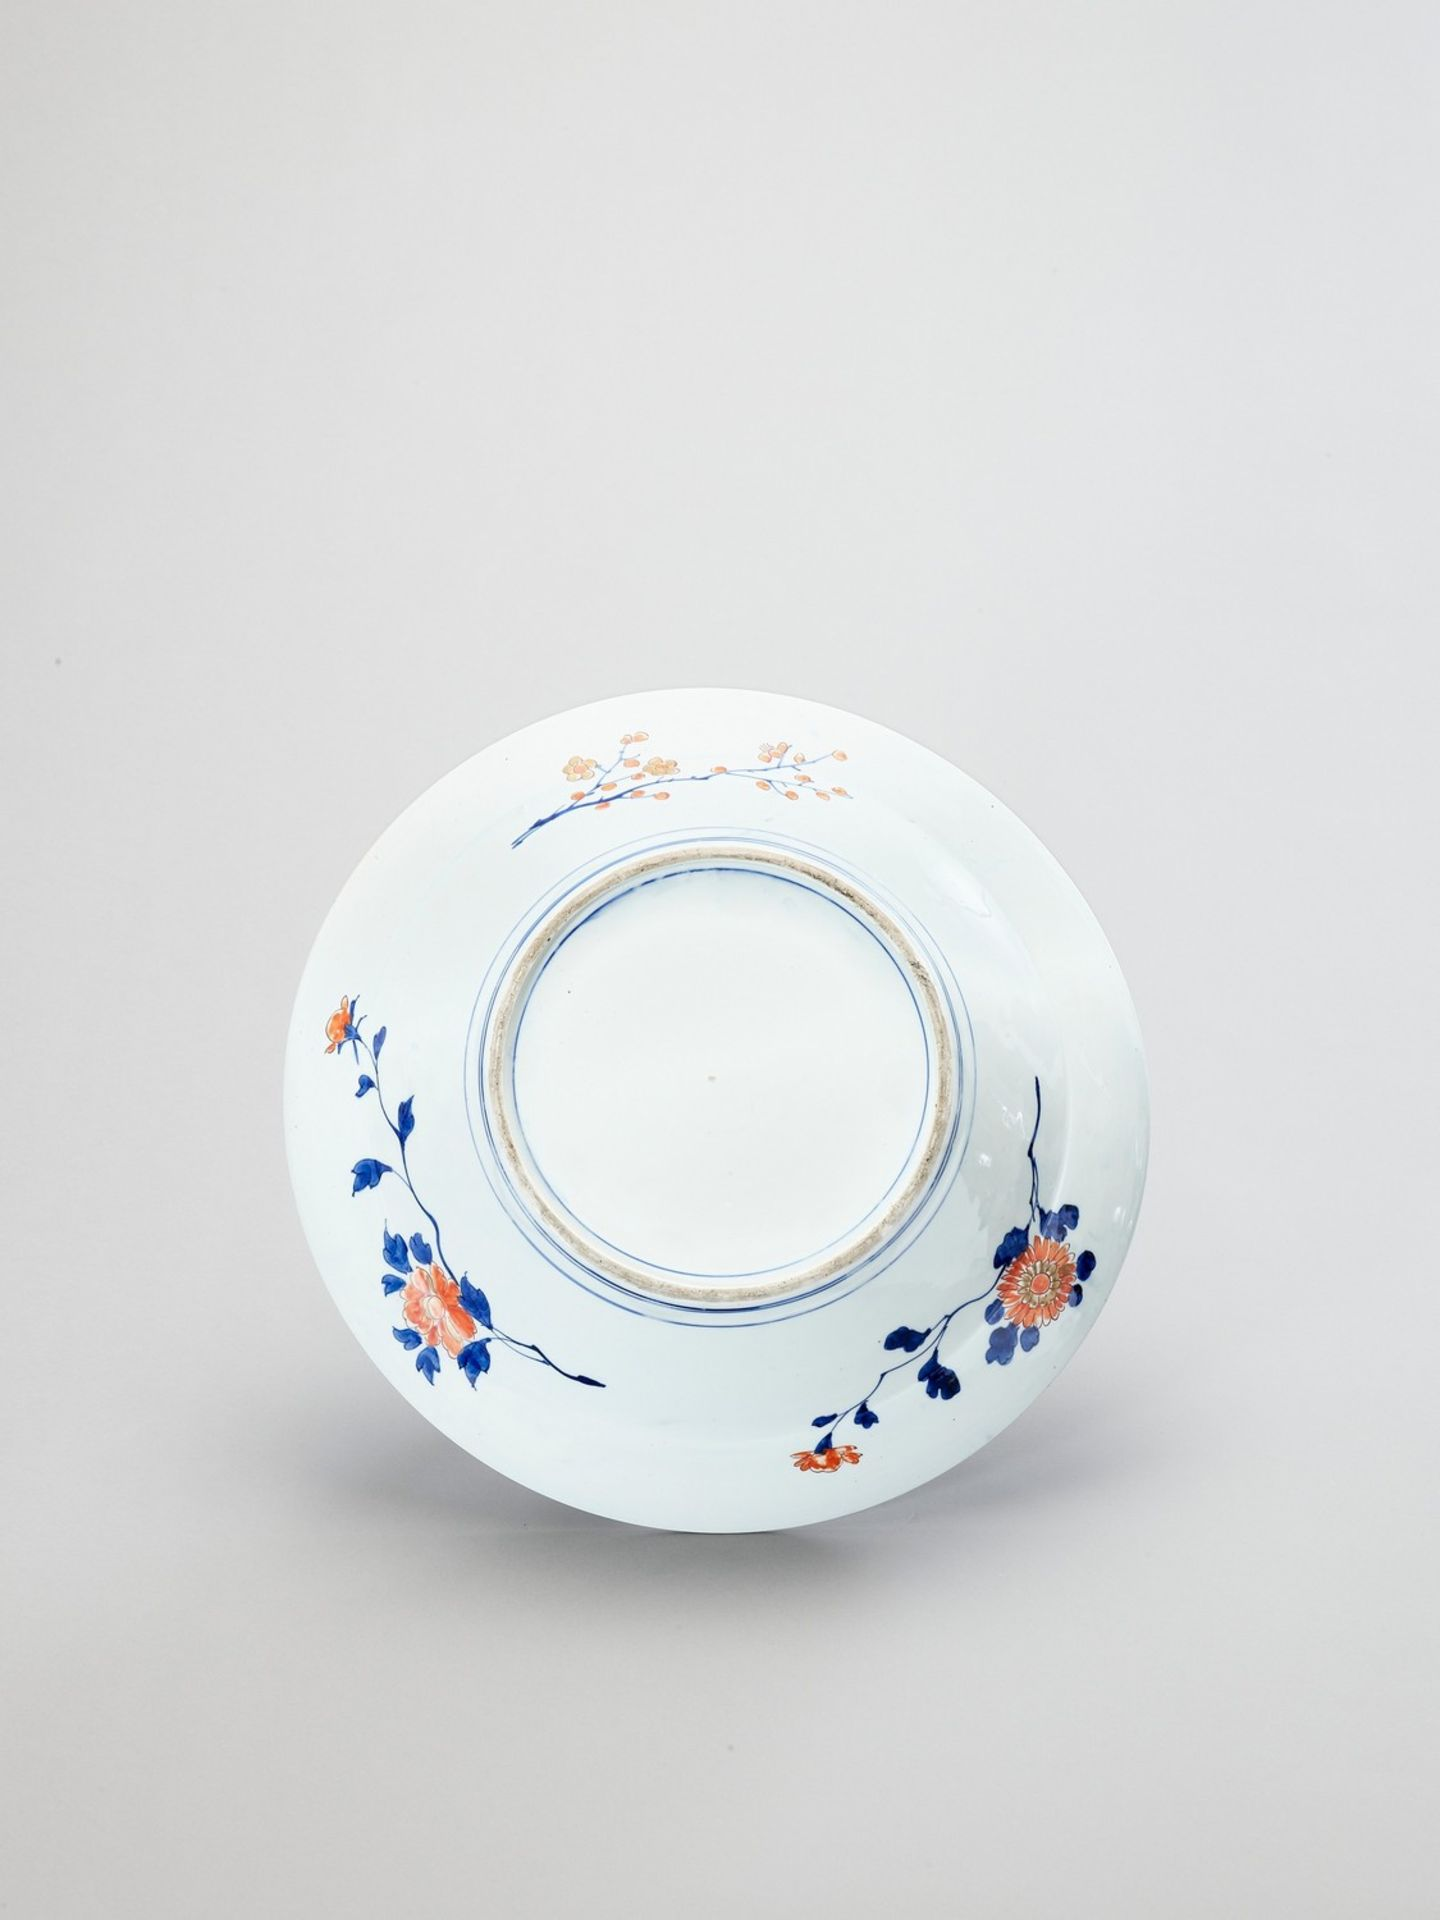 A LARGE IMARI PORCELAIN CHARGER - Image 3 of 4